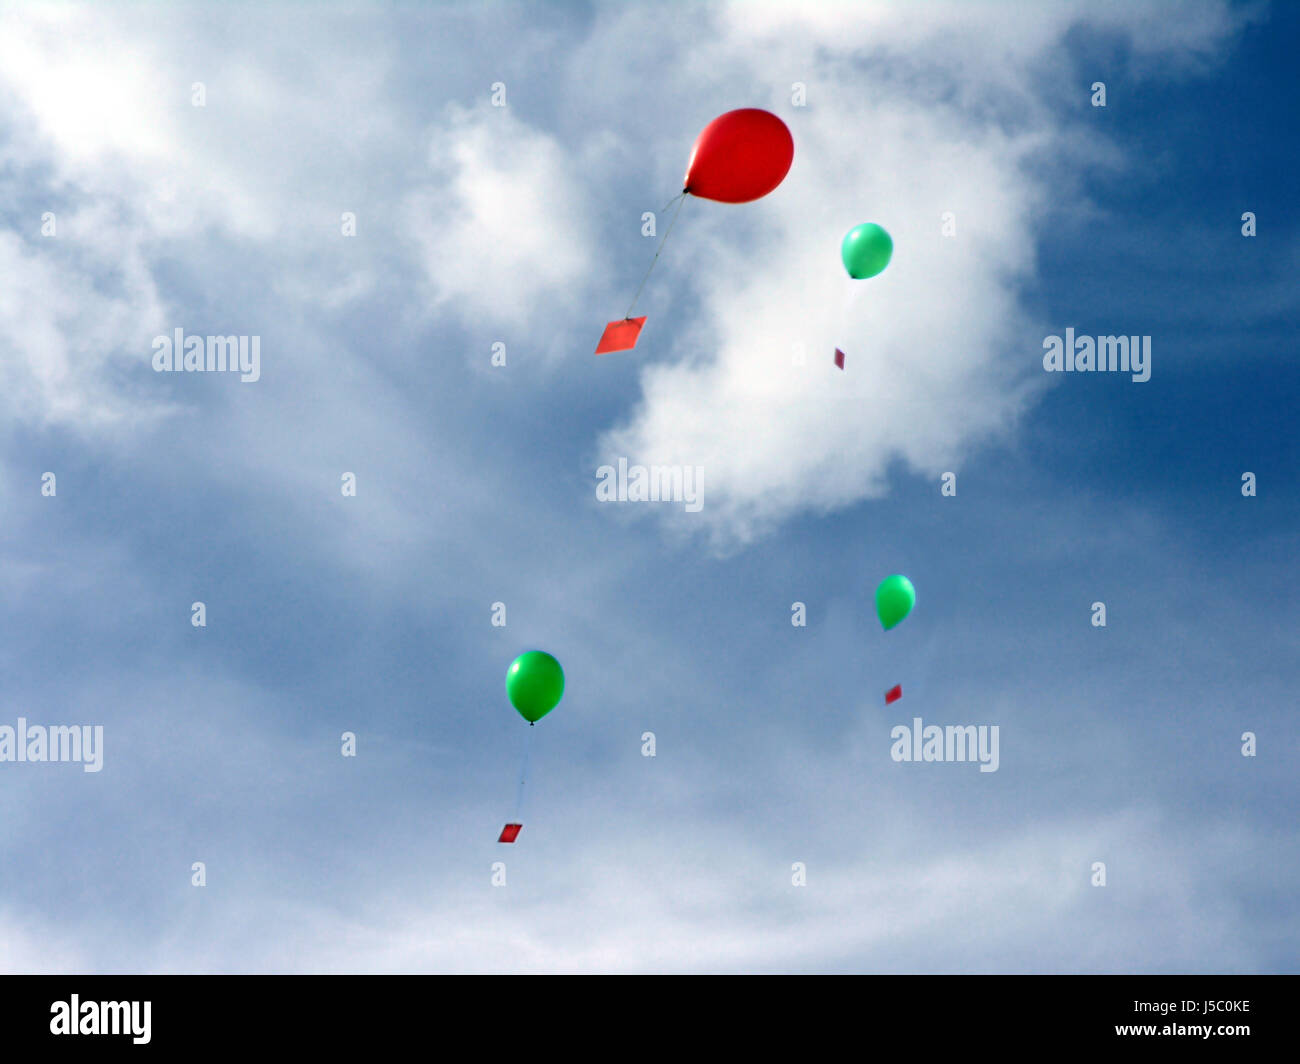 blue balloon competition airmail sender addressee receiver firmament sky child - Stock Image